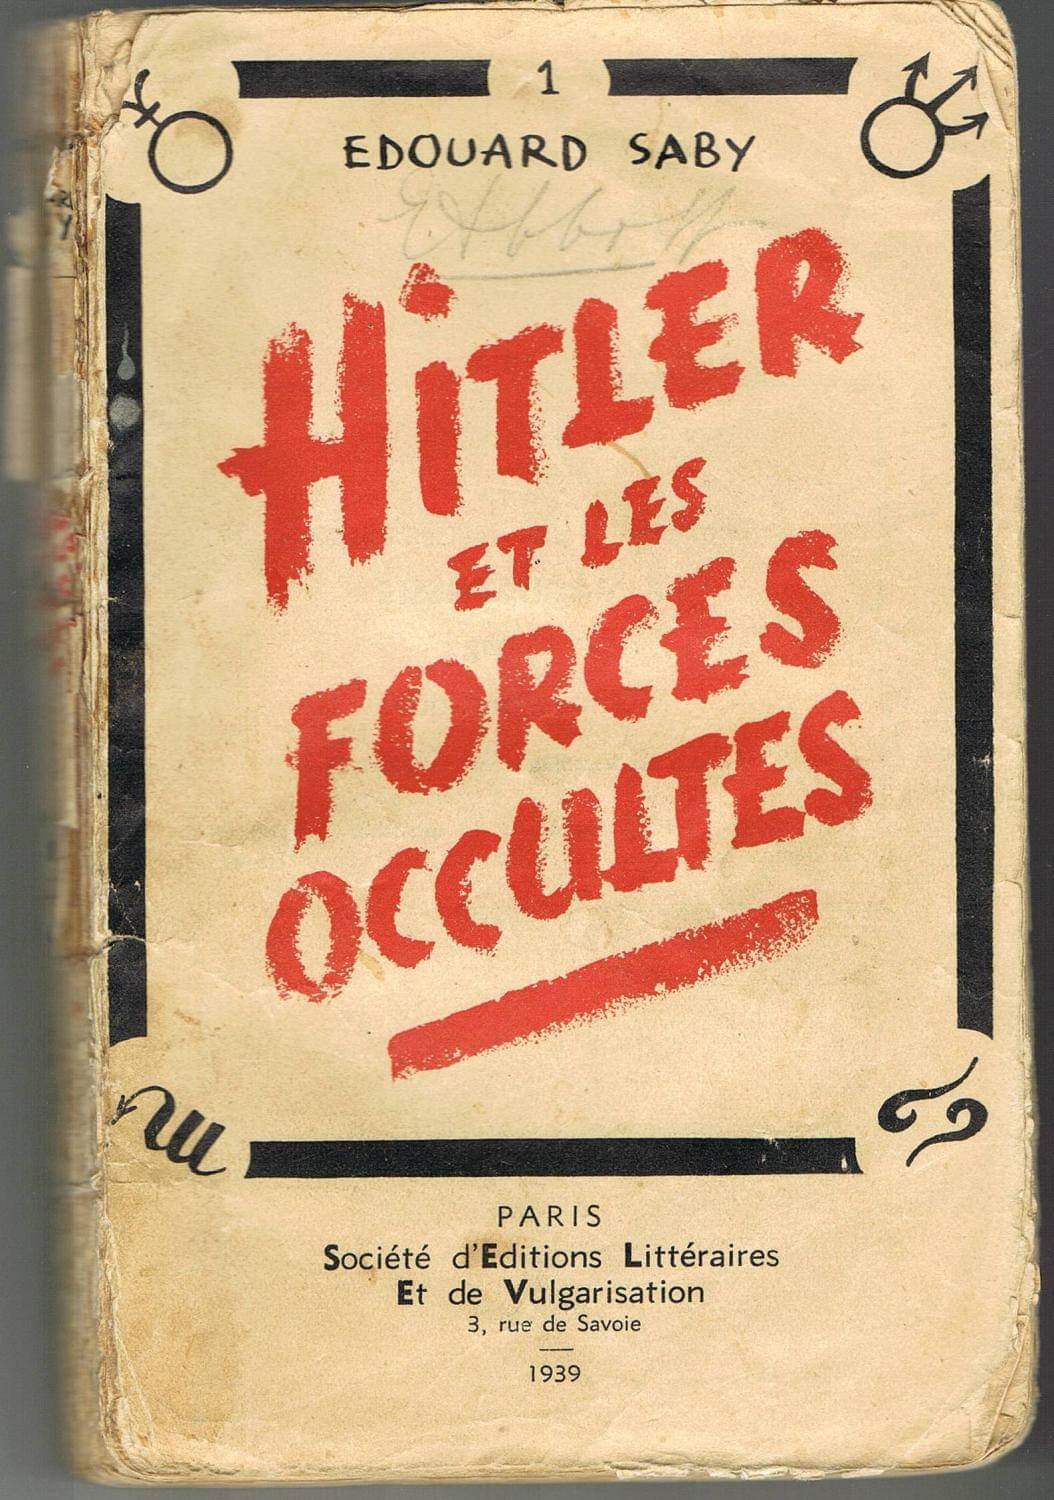 """Hitler et les Forces Occultes"" di Edouard Saby"